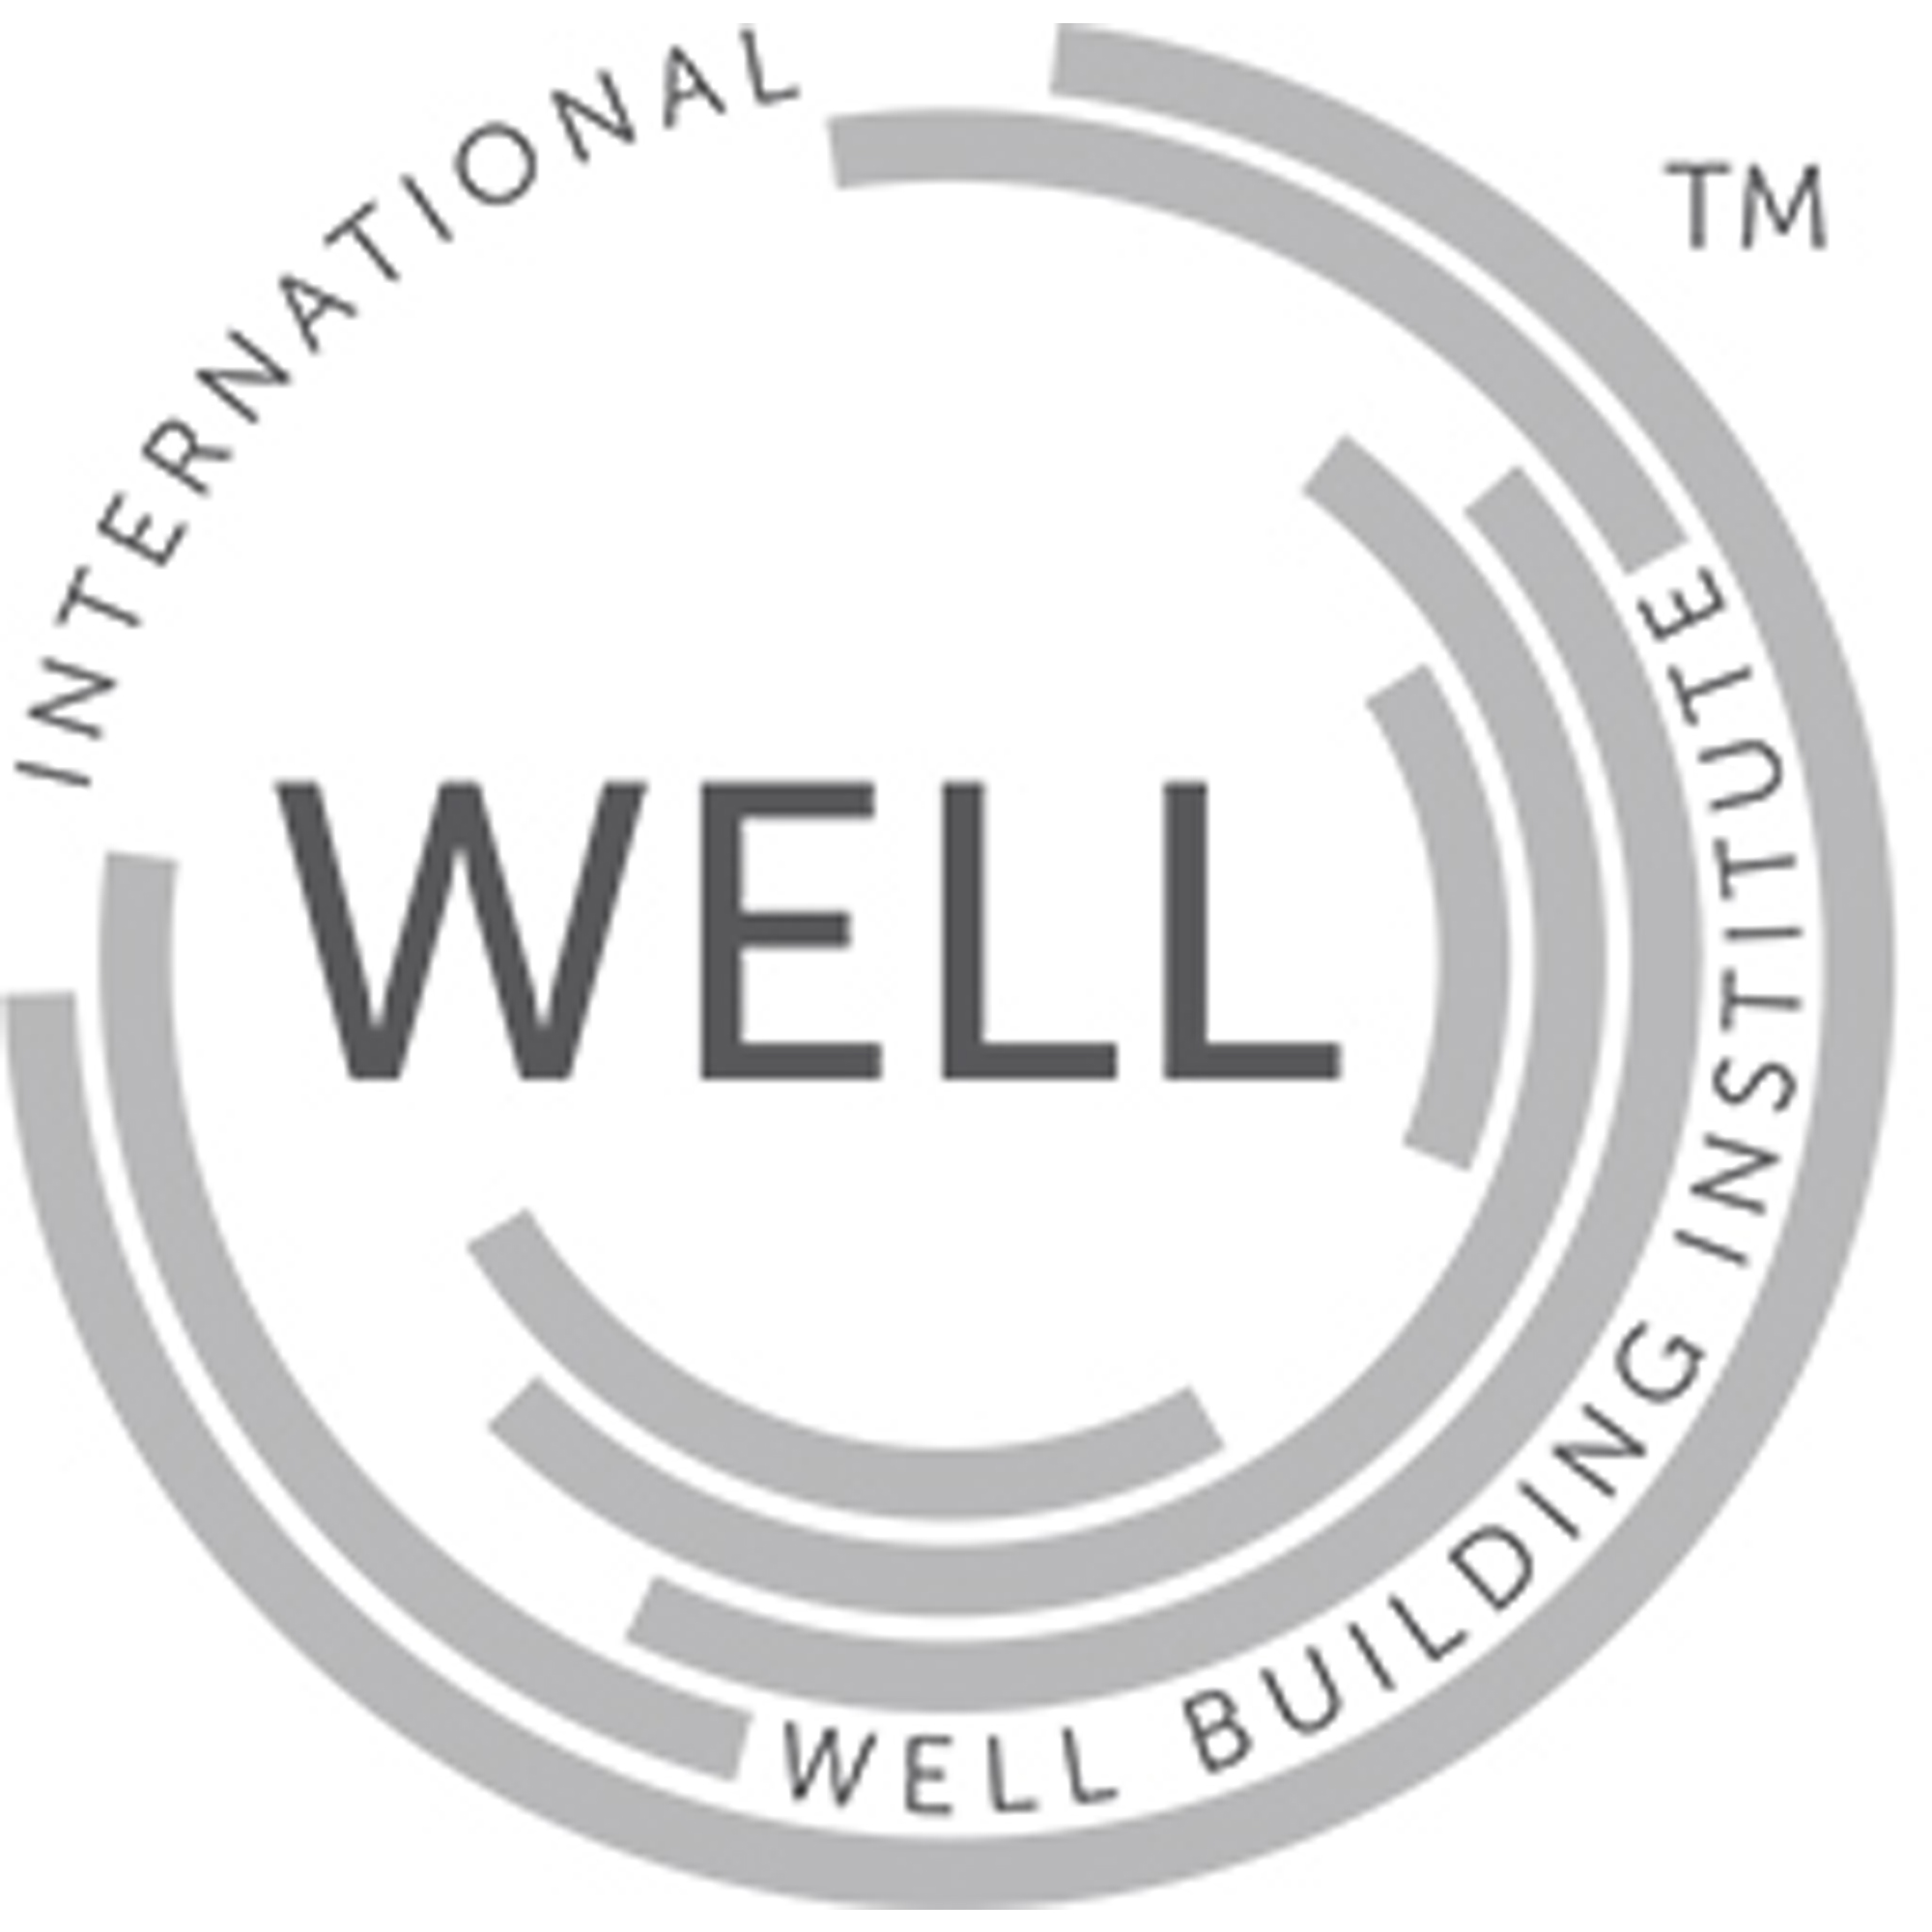 WELL Building Standard® | Armstrong Ceiling Solutions ...